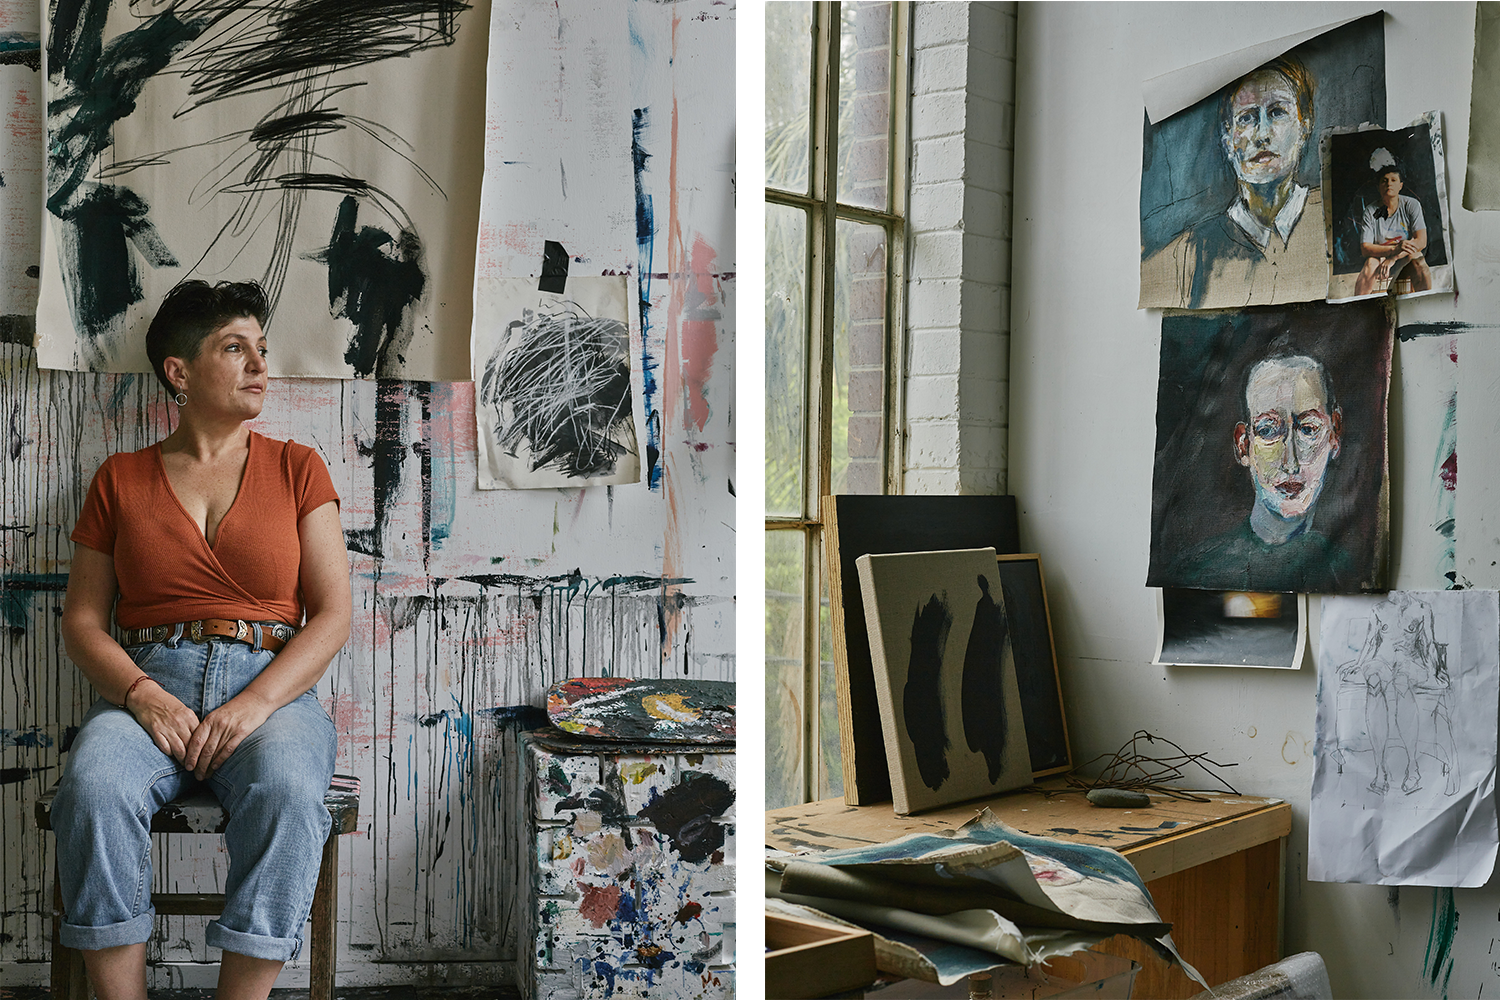 ISE - Love letters to earth series - Antonia Mrljak in her studio where she paints